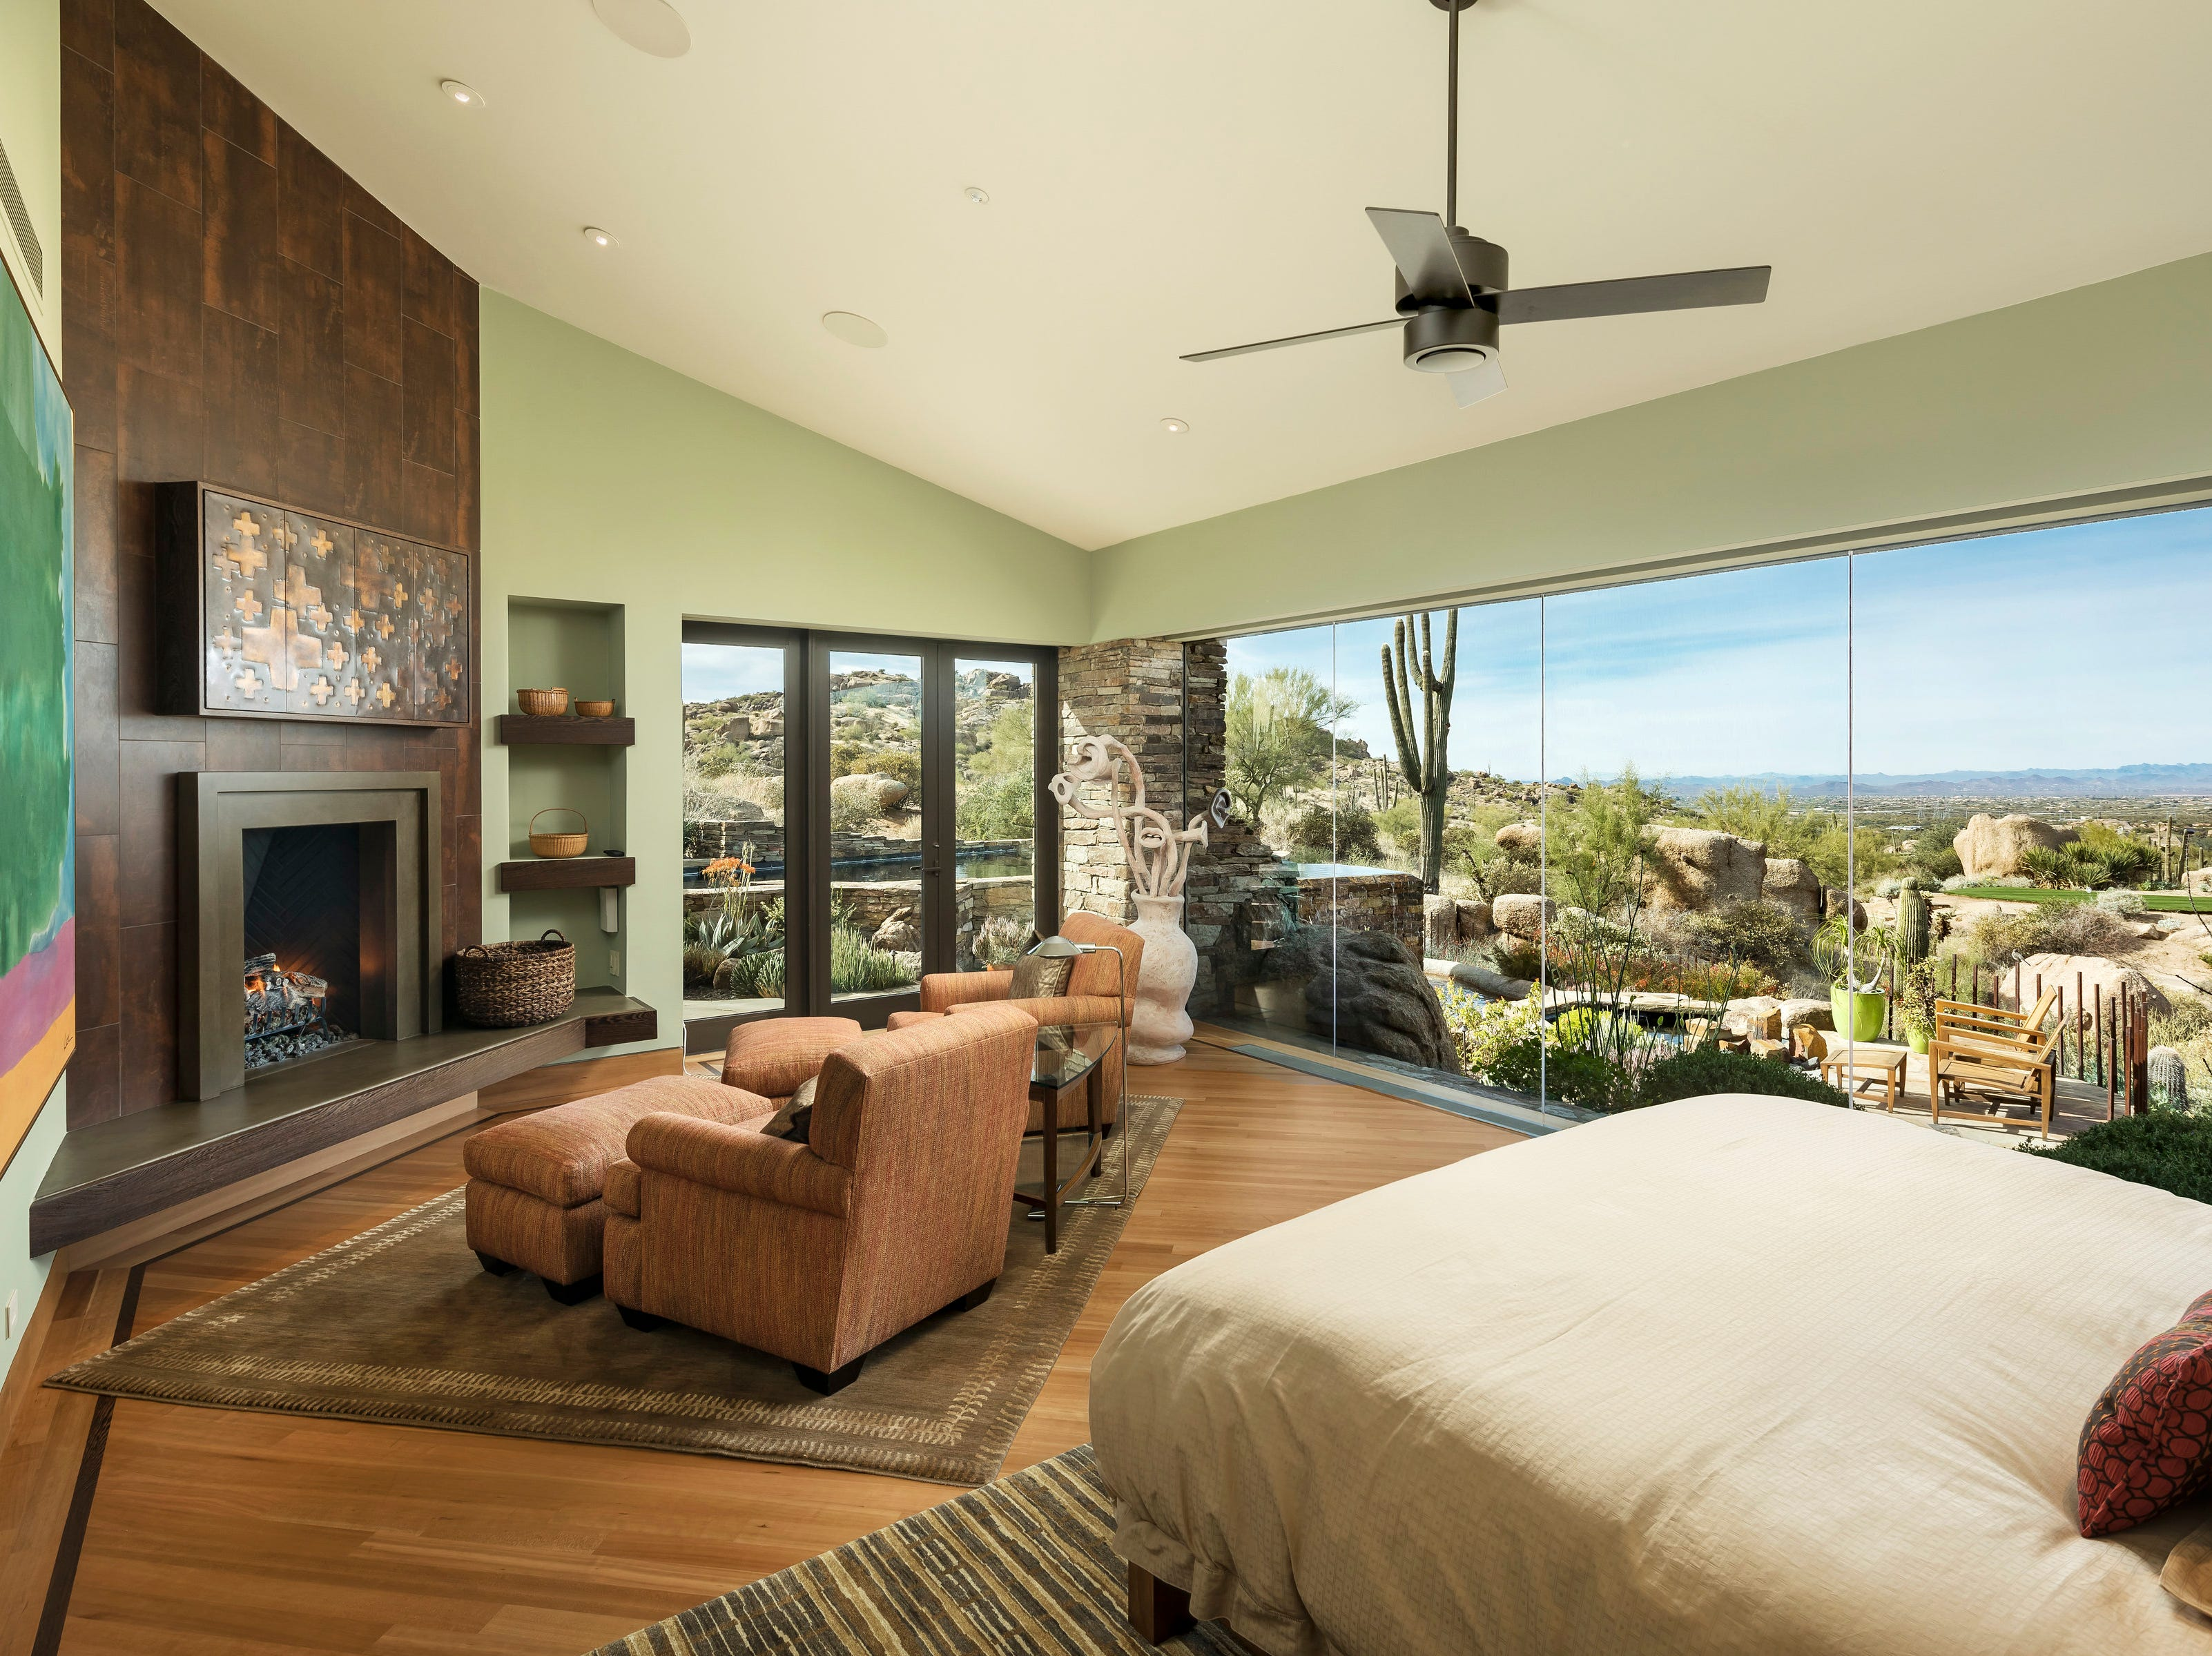 The North Scottsdale estate has views of surrounding mountains and desert landscape.